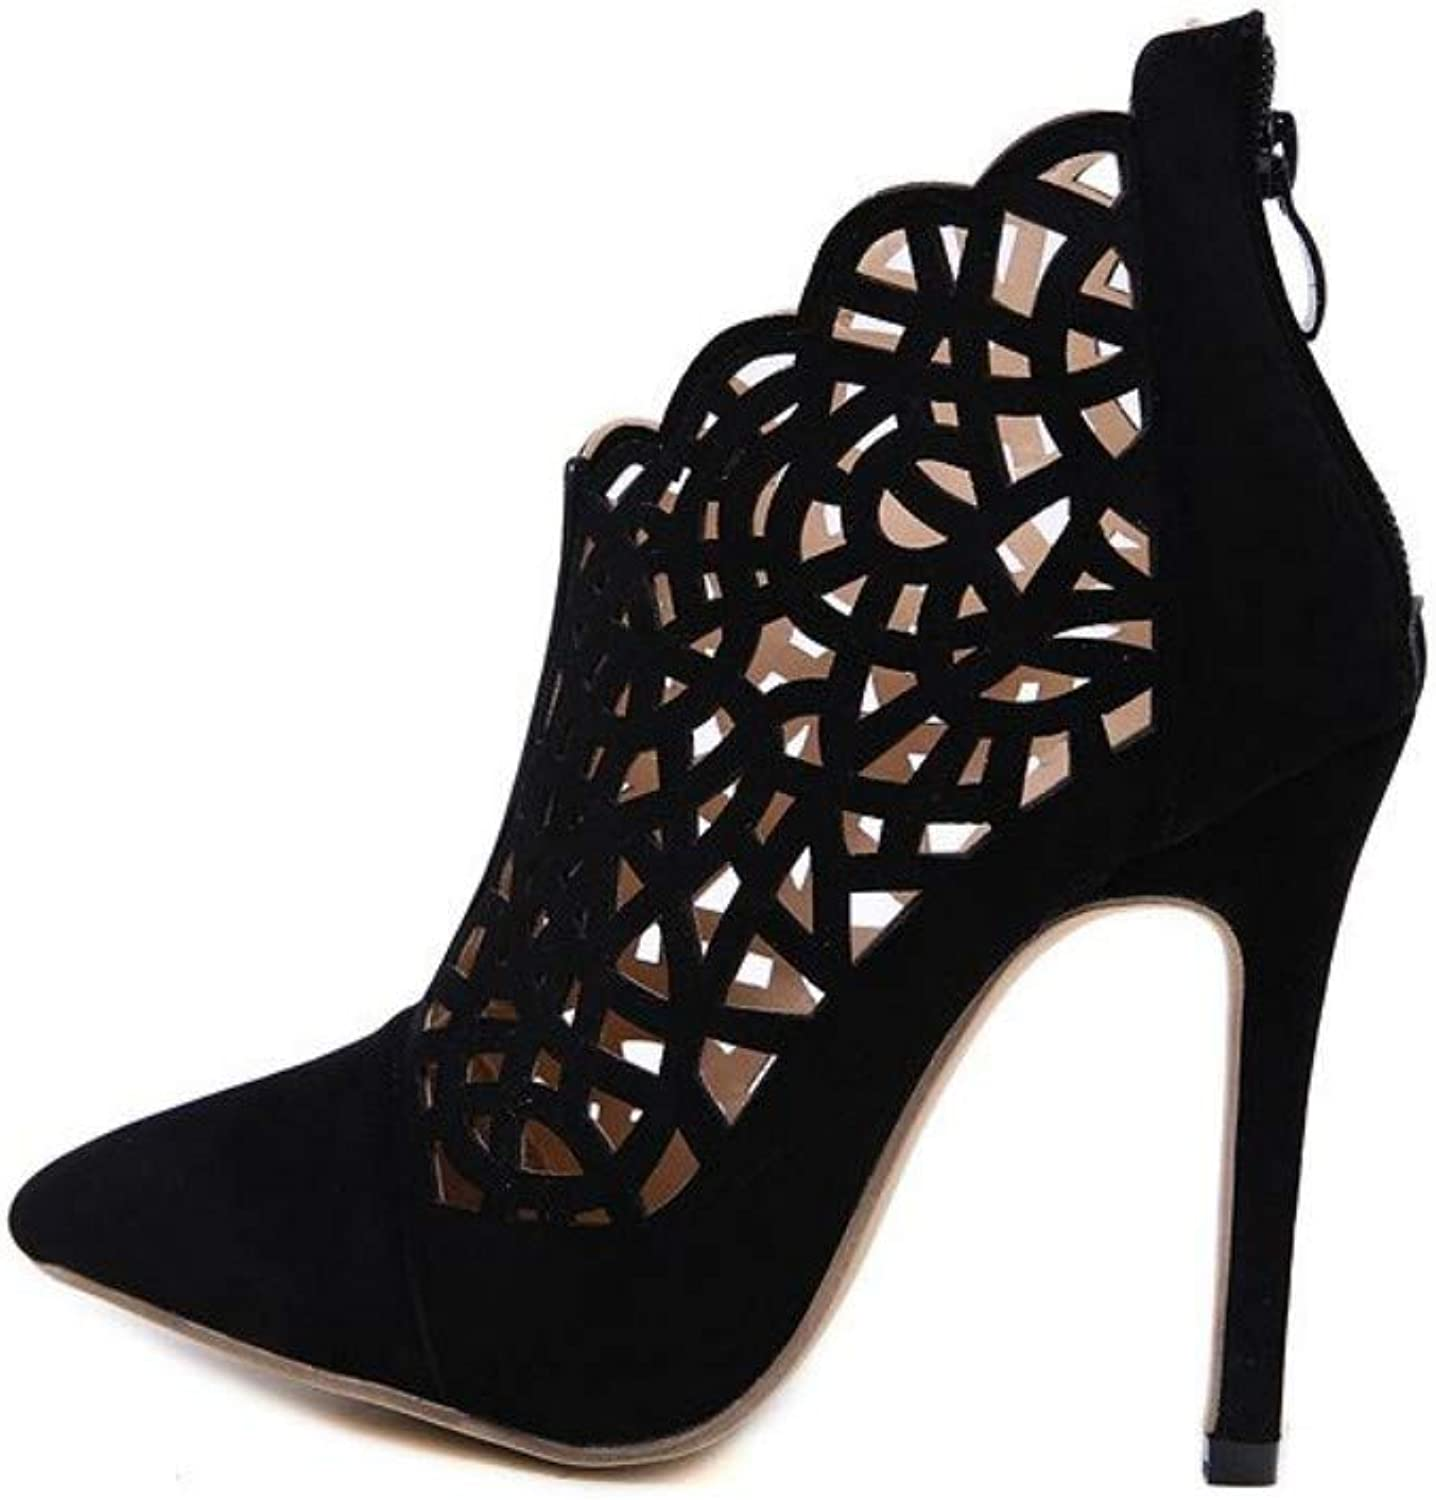 JQfashion Sexy Hollow-Out High-Heeled Sandals with Pointed Suede Heels